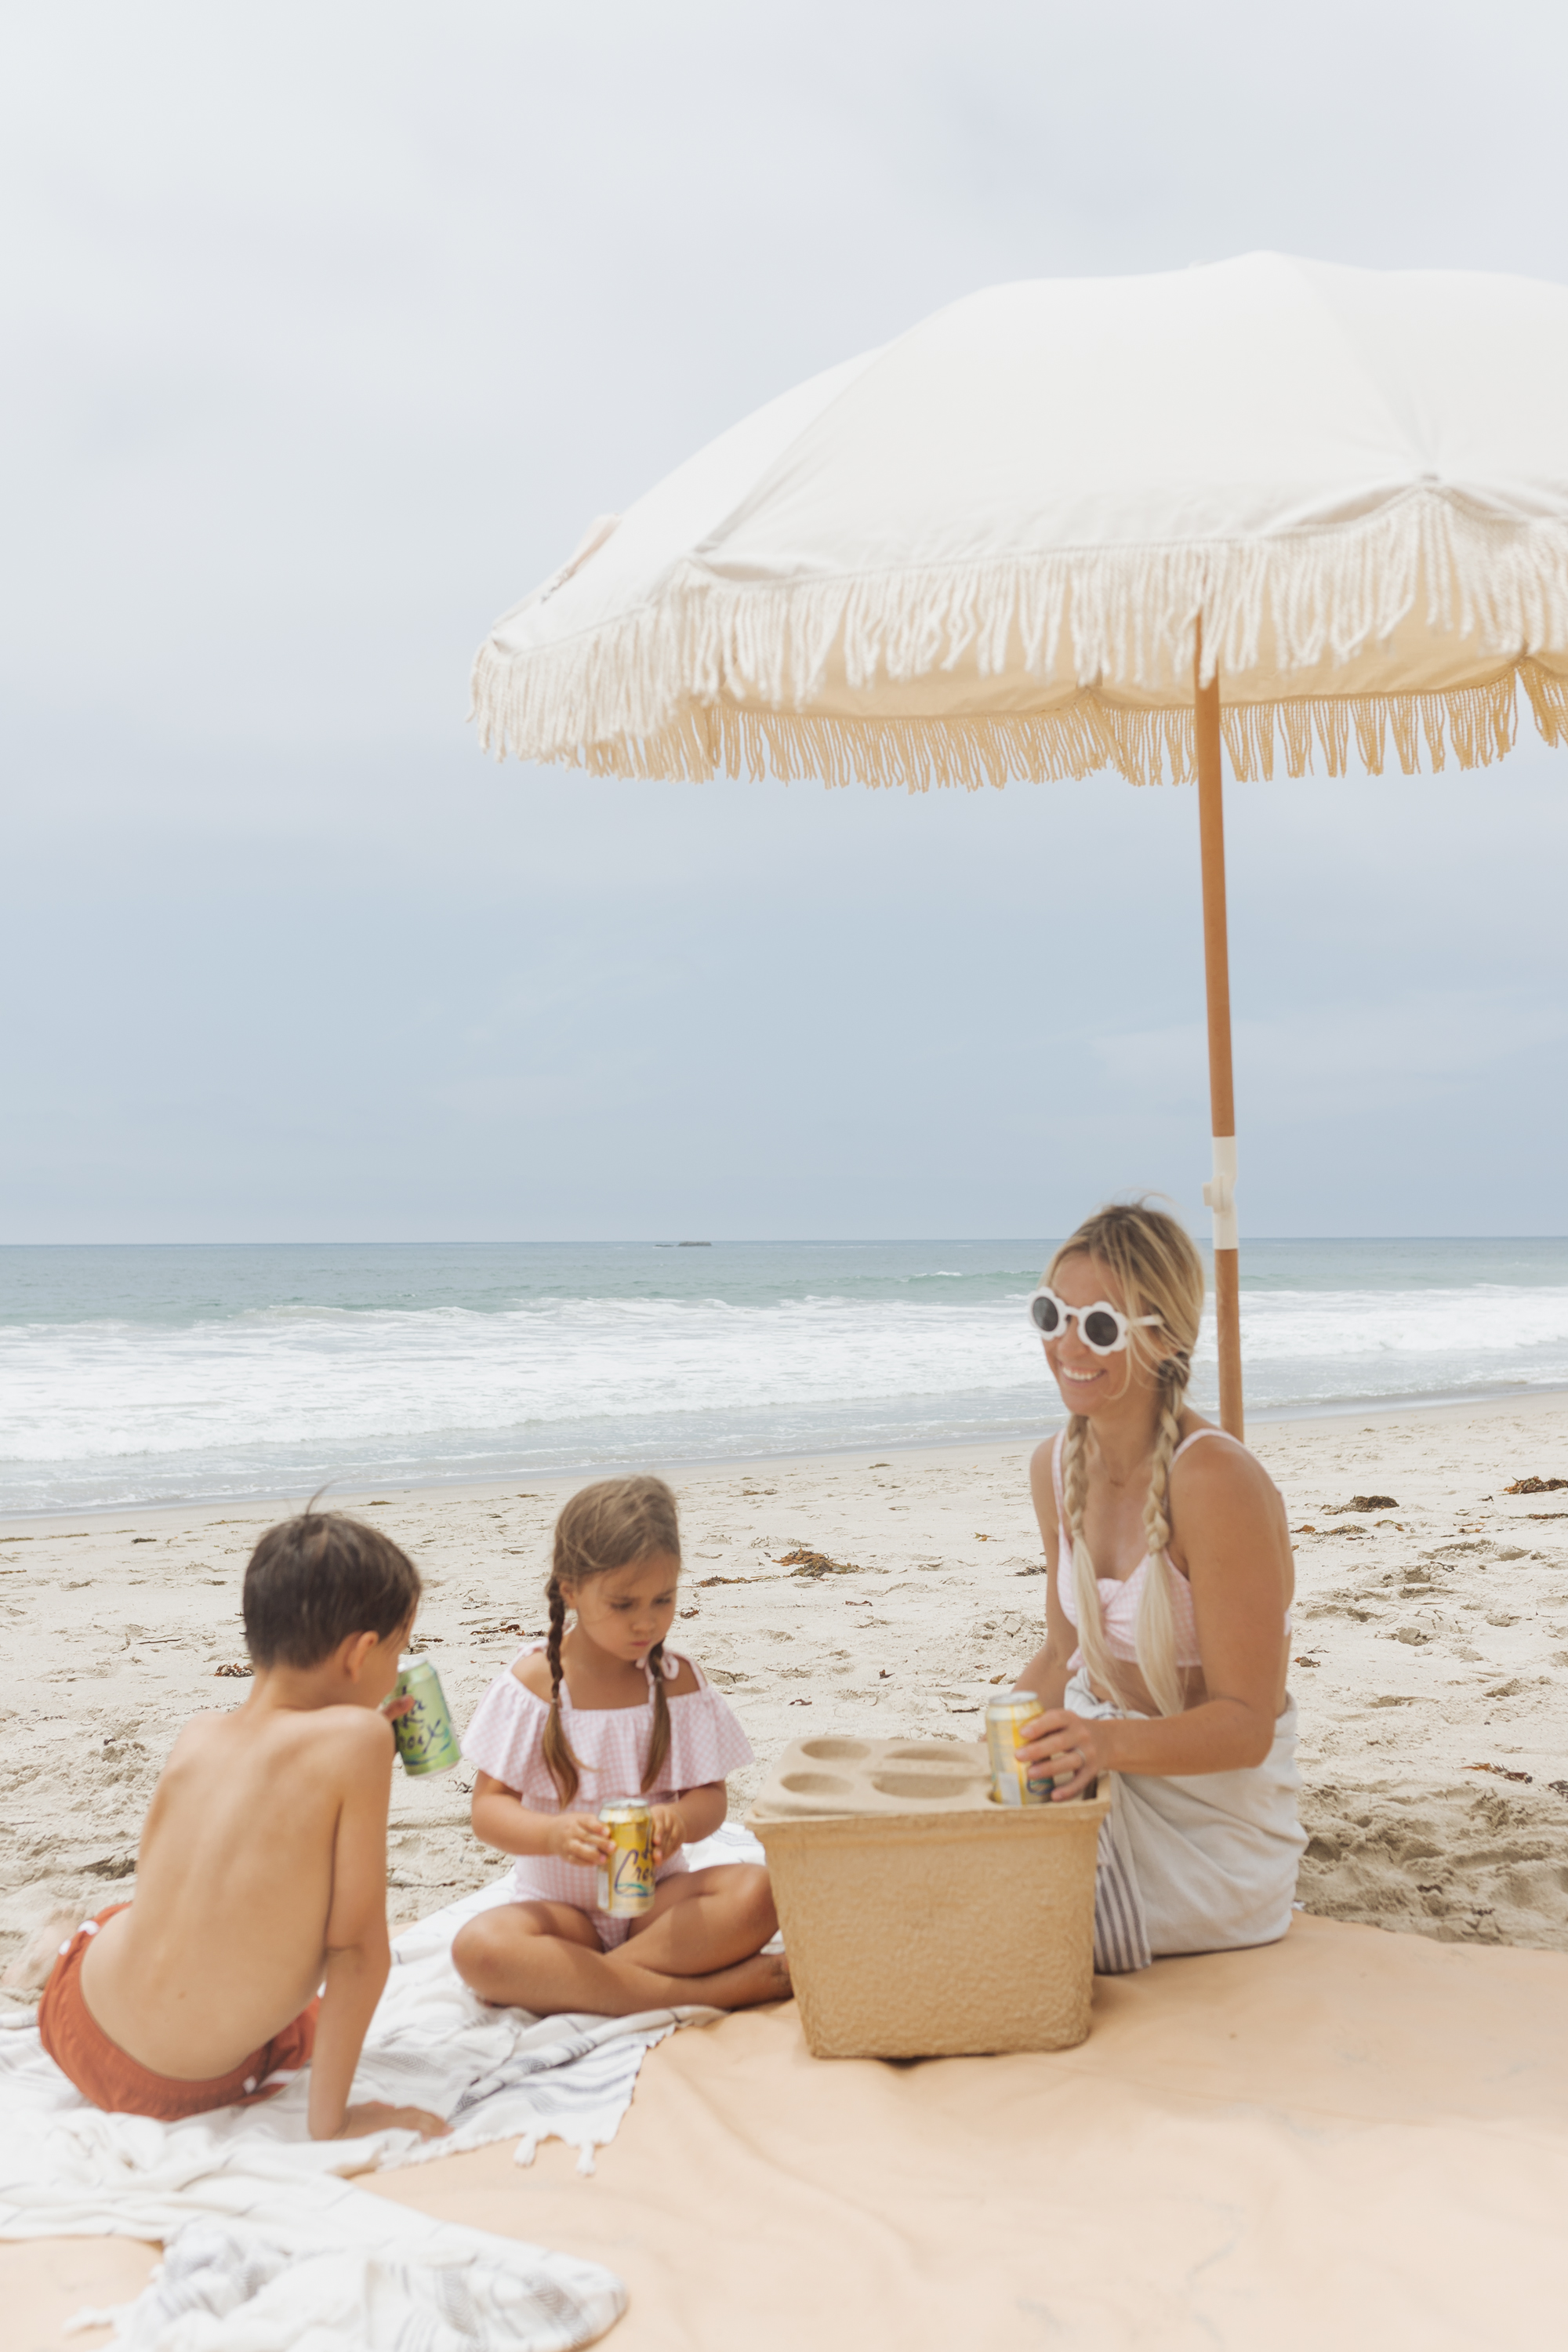 beach picnic under and umbrella with 3 people